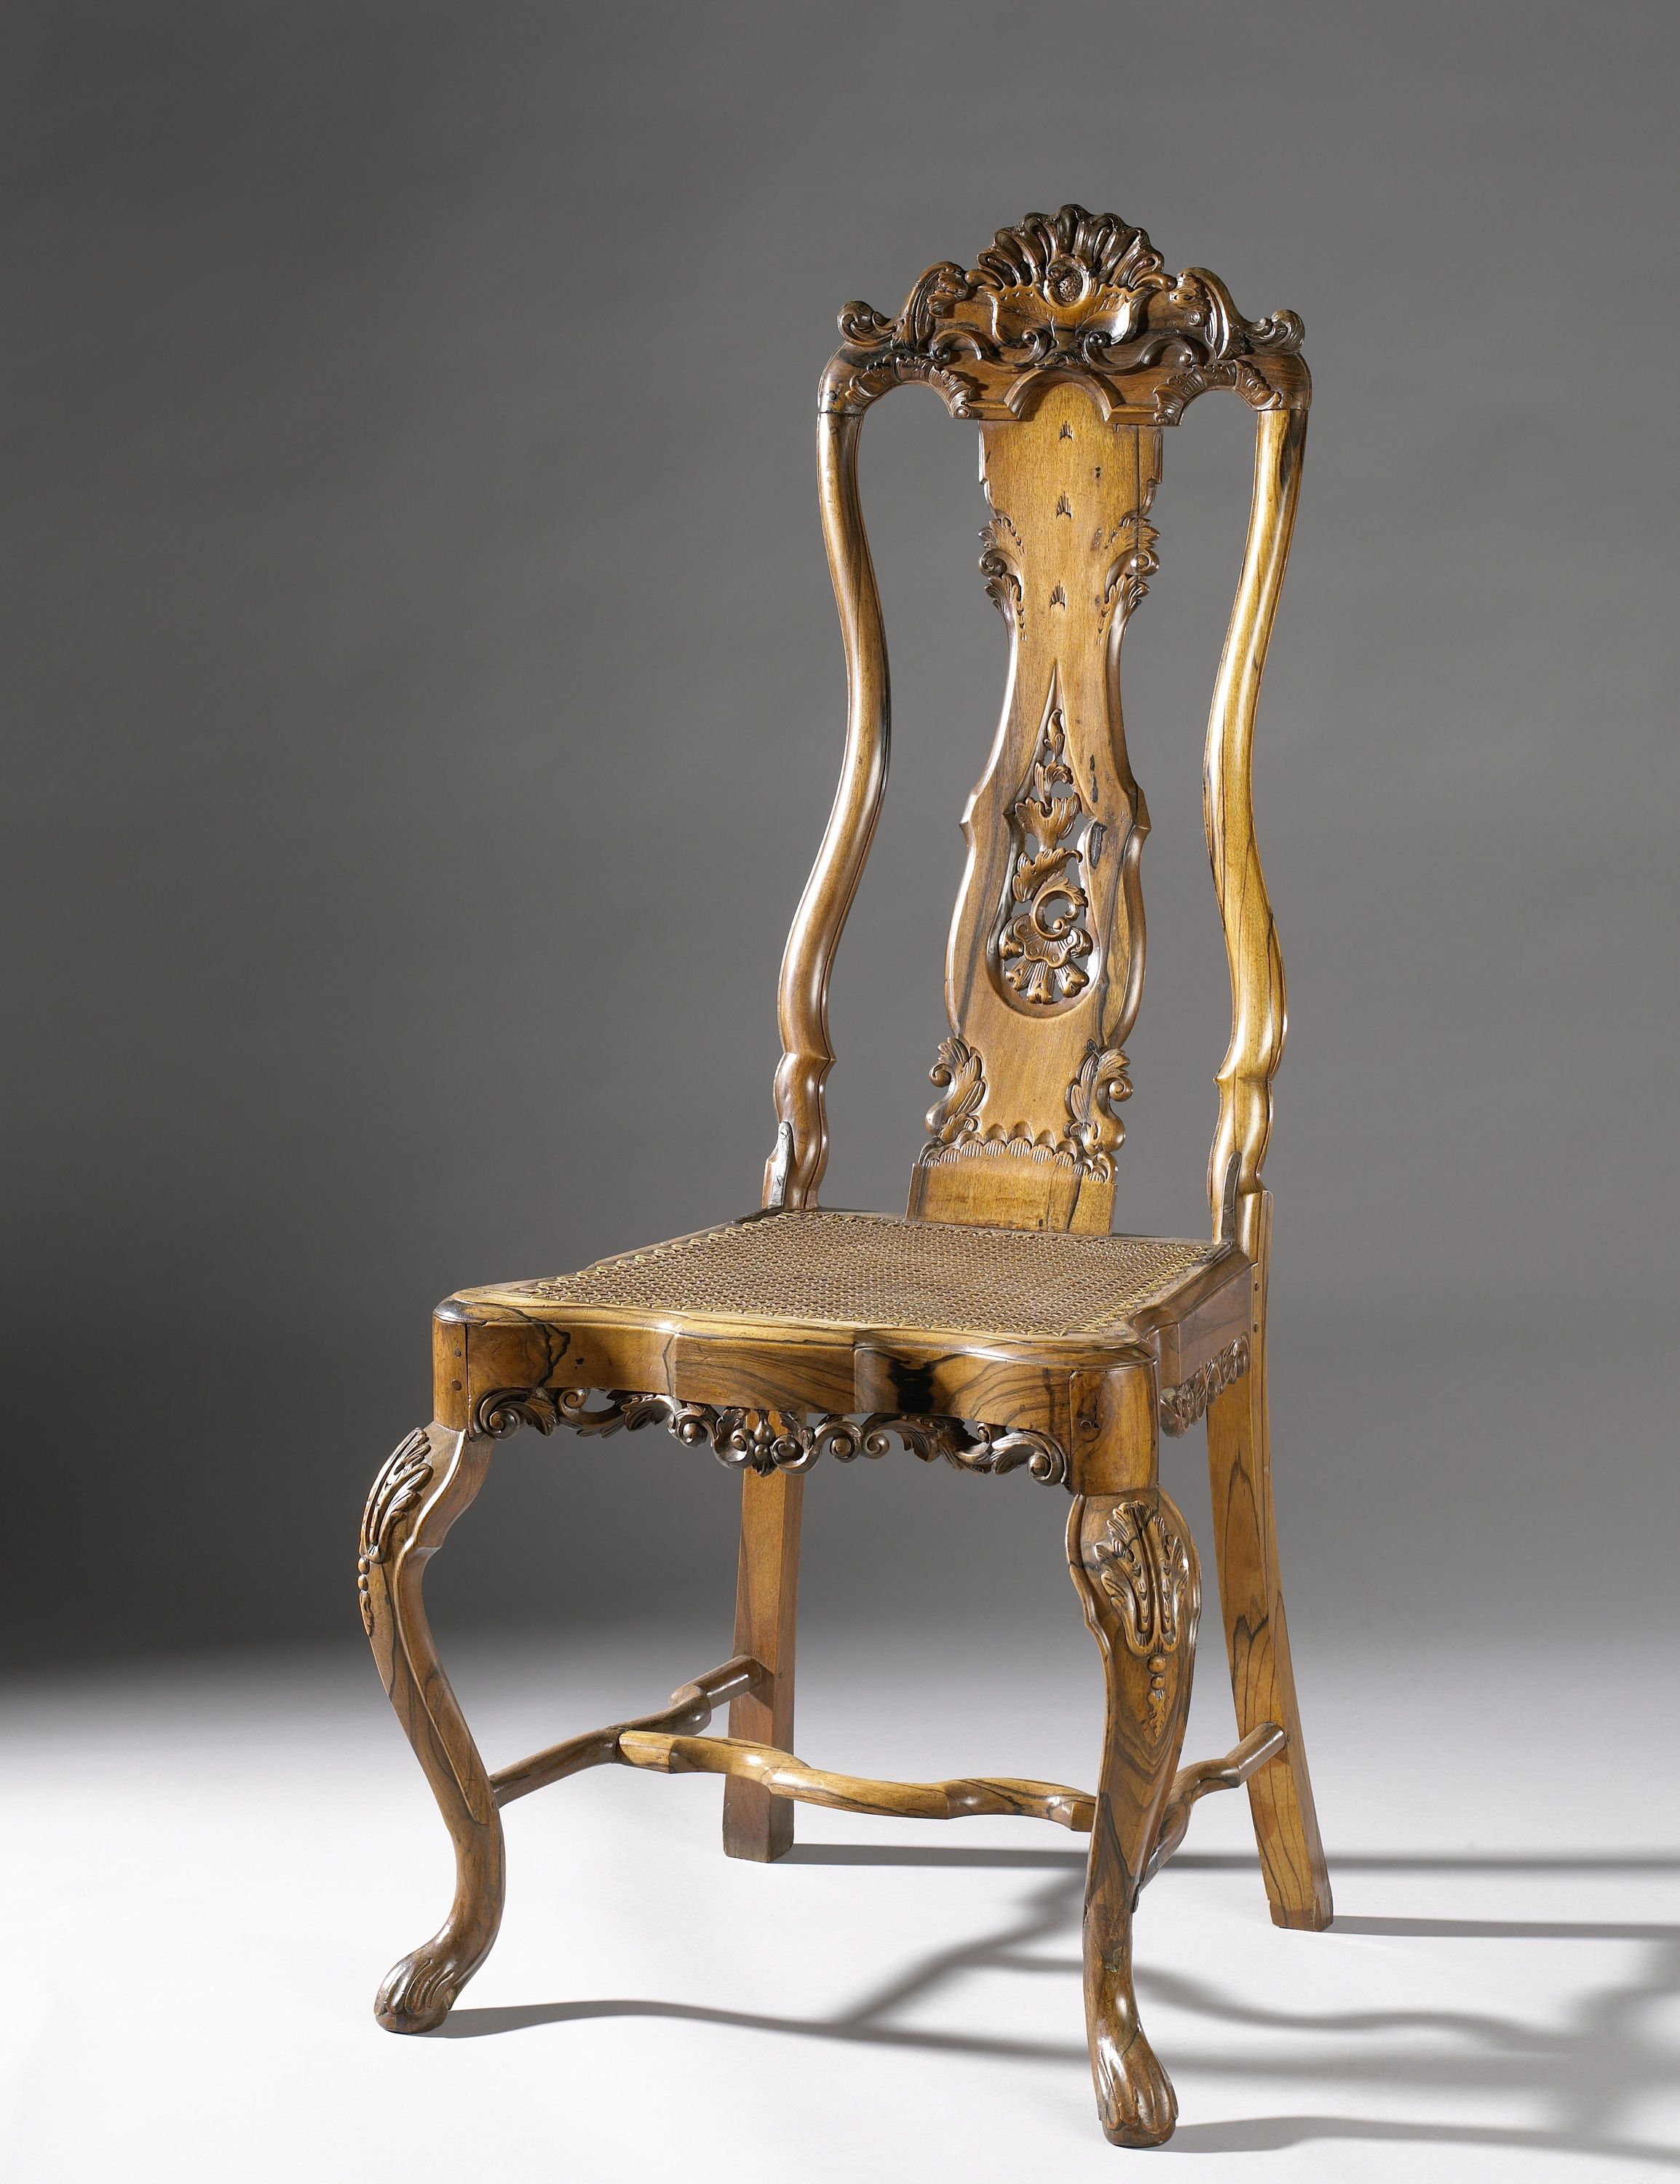 Superbe Chair, Sri Lanka, 1750. Rijksmuseum, Public Domain